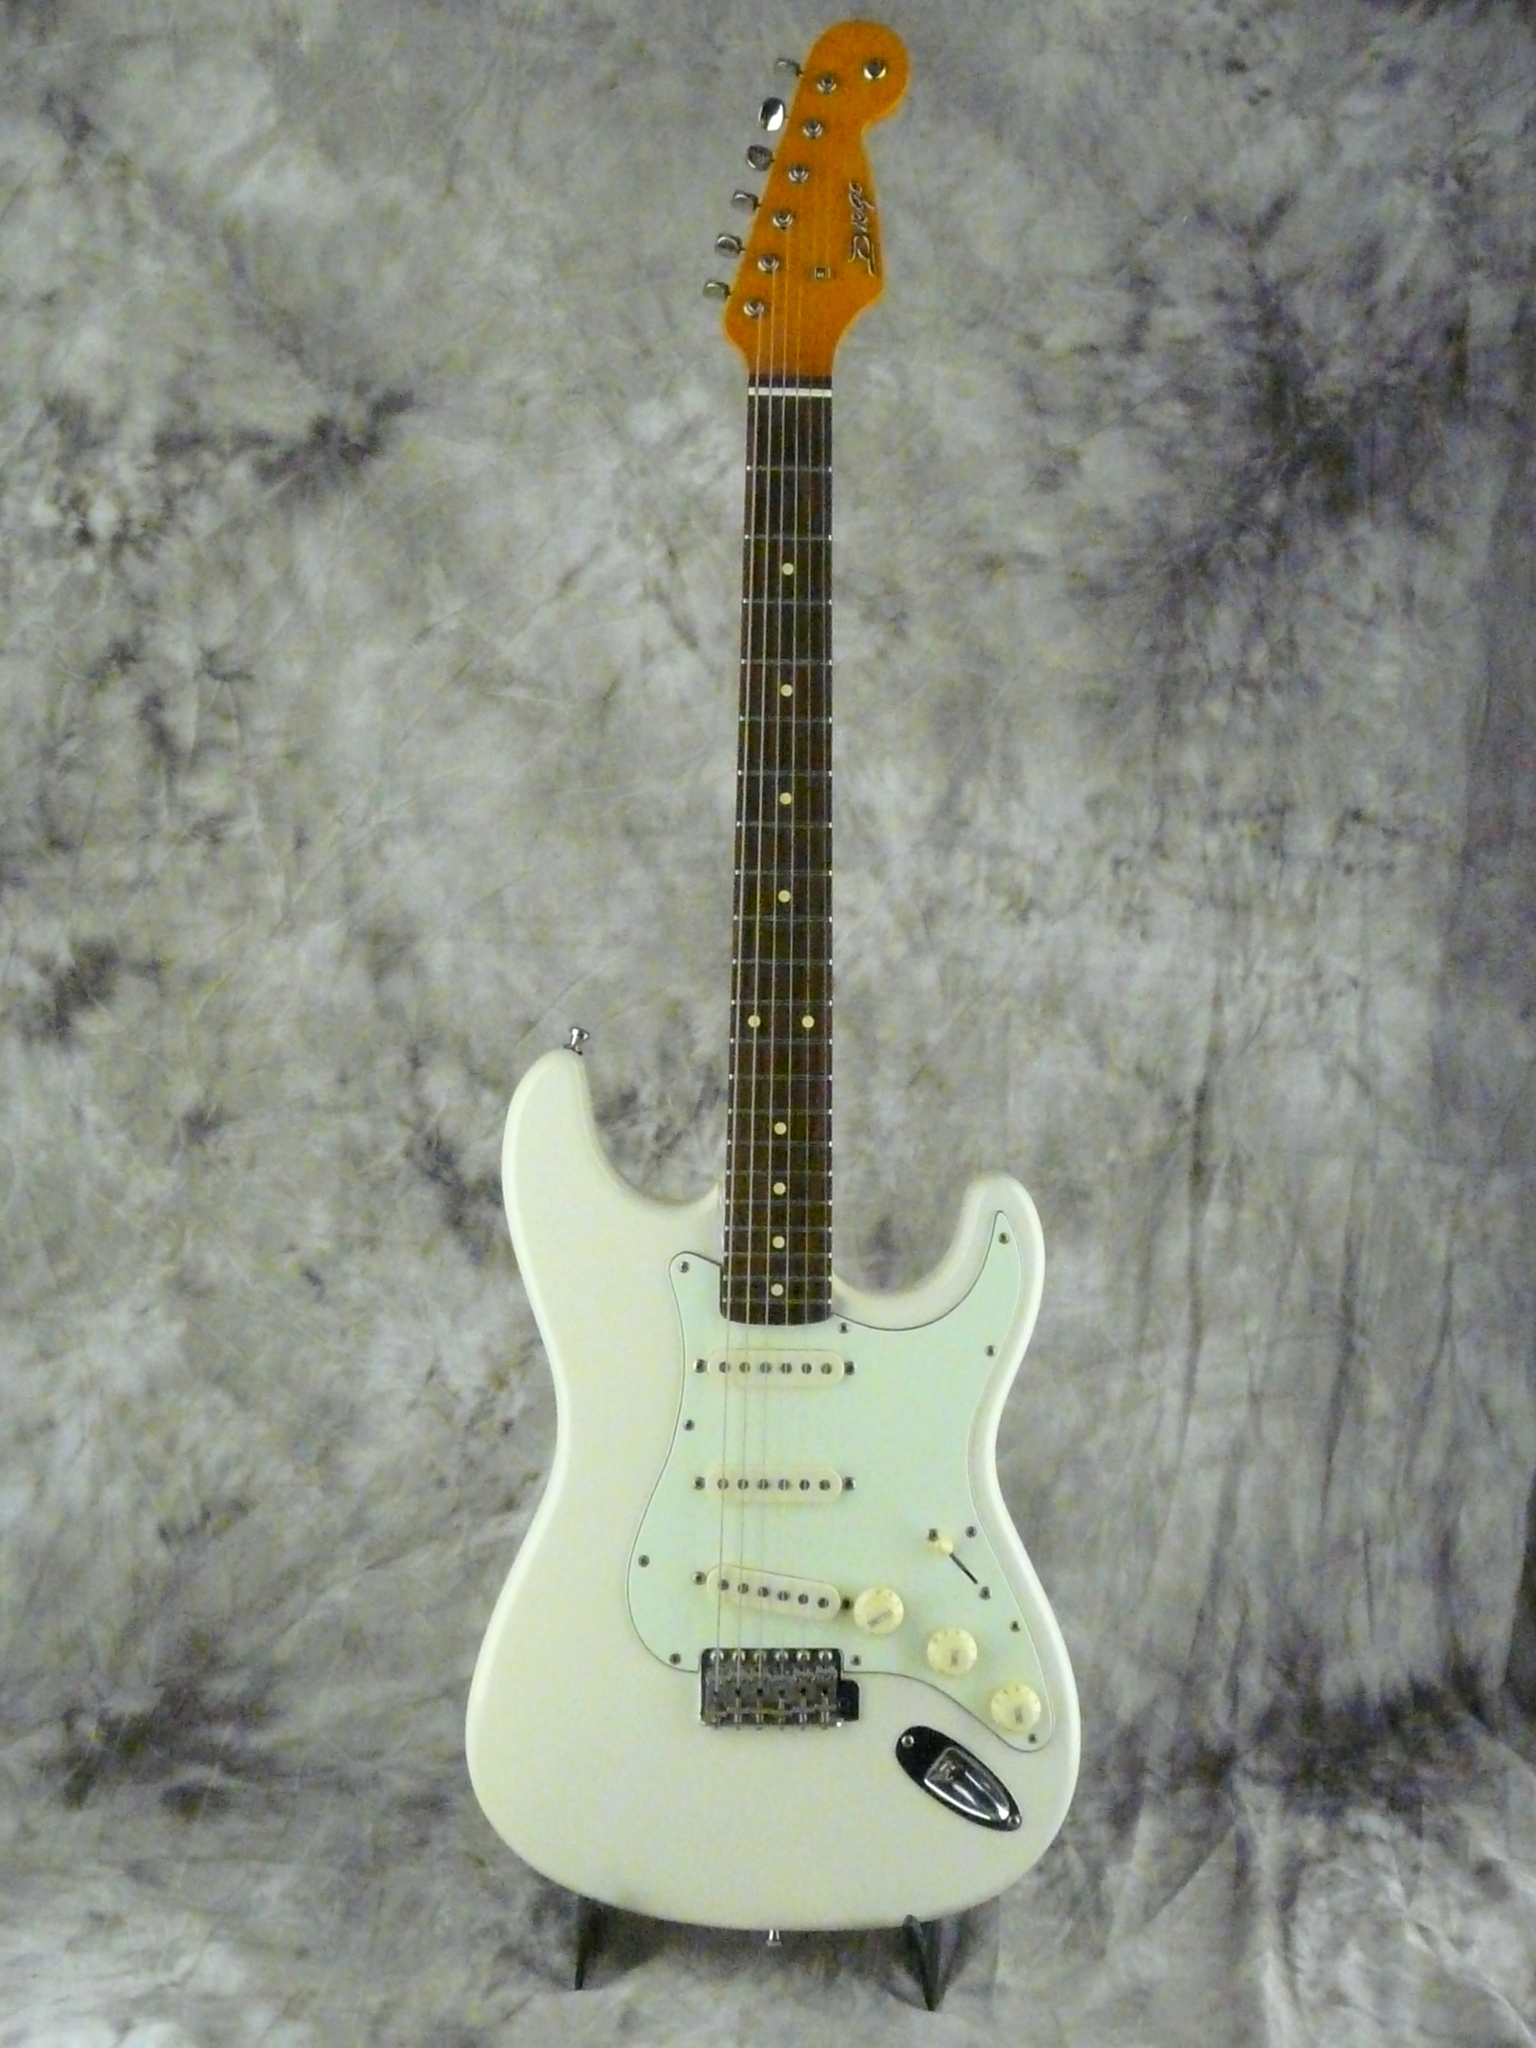 img/vintage/3254/Diego-Stratocaster-1998-olympic-white-001.JPG